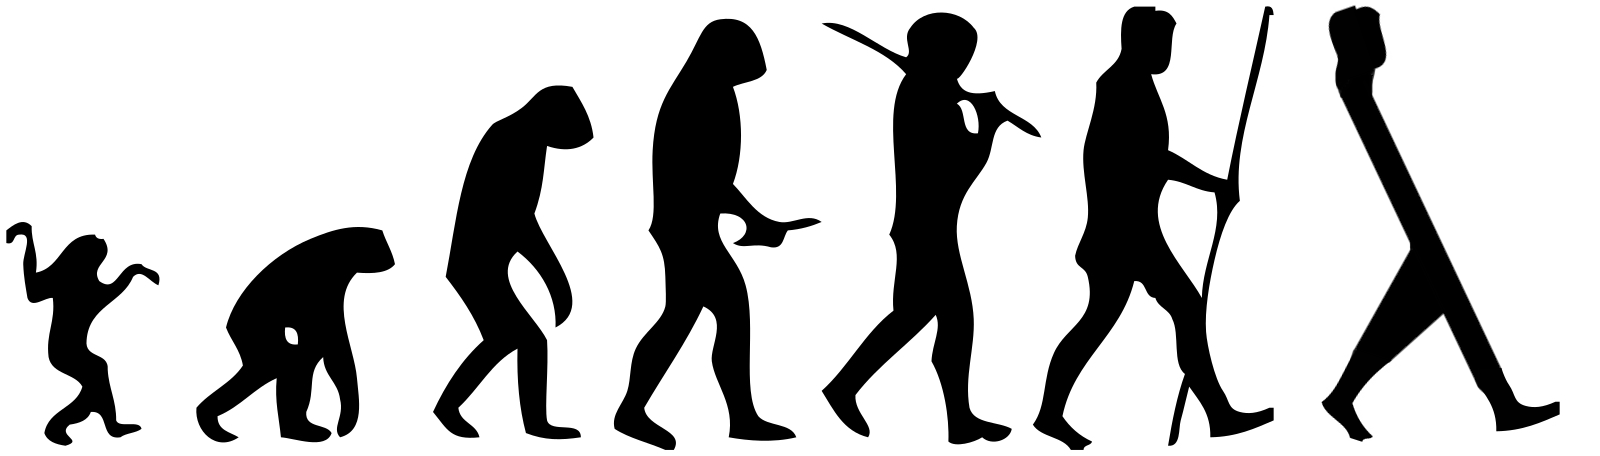 """The evolution of a functional programmer,"" based on Human evolution scheme by M. Garde - Self work (Original by: José-Manuel Benitos), CC BY-SA 3.0"